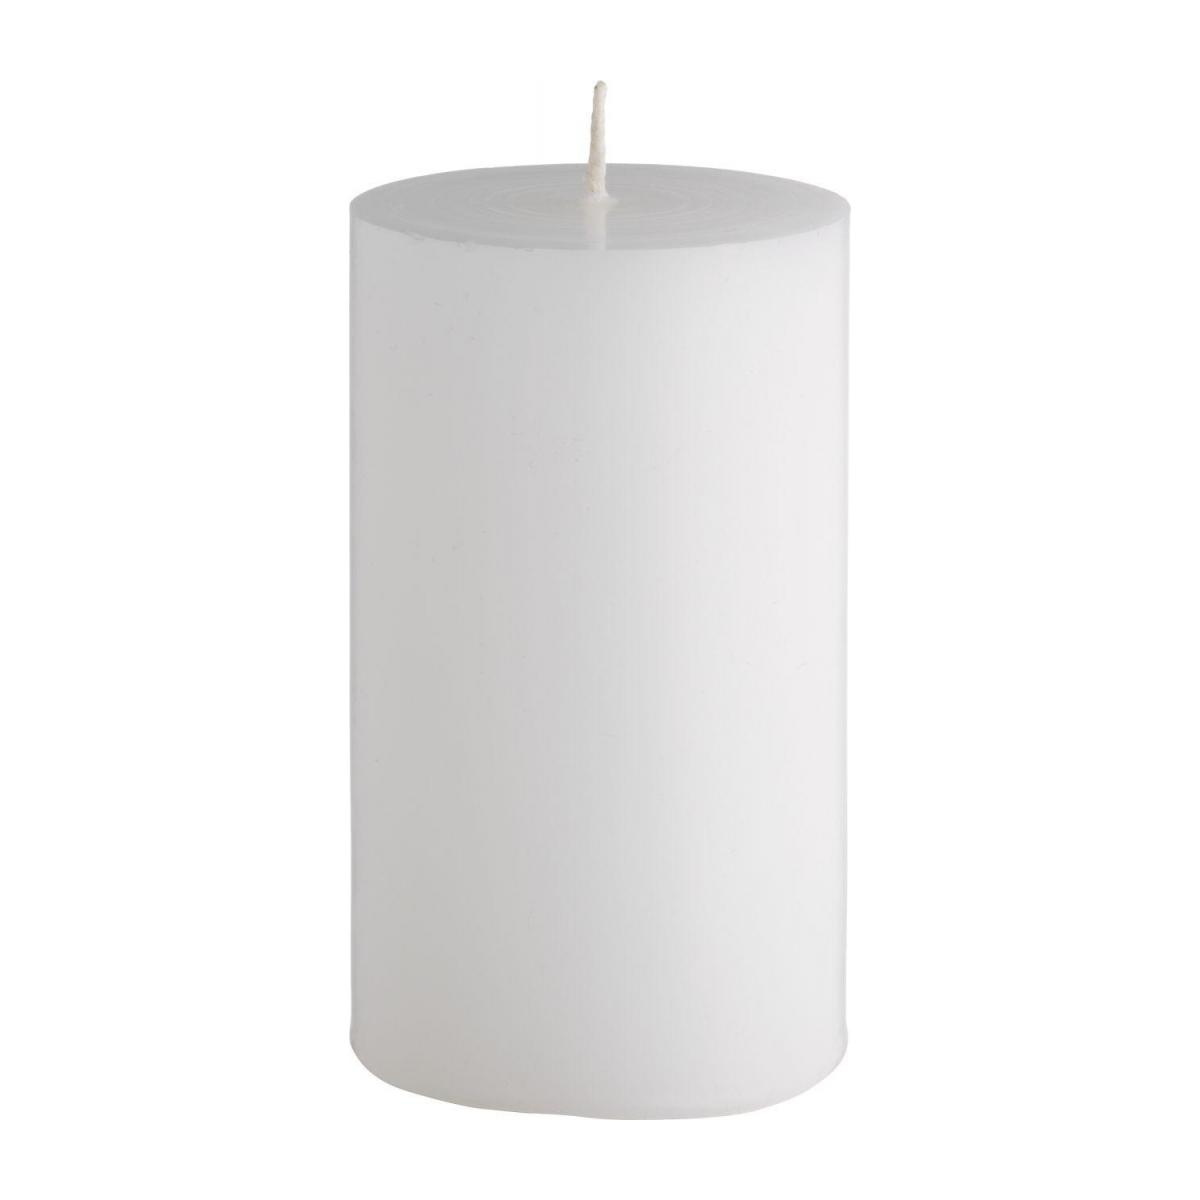 Bougie cylindre 10cm blanche